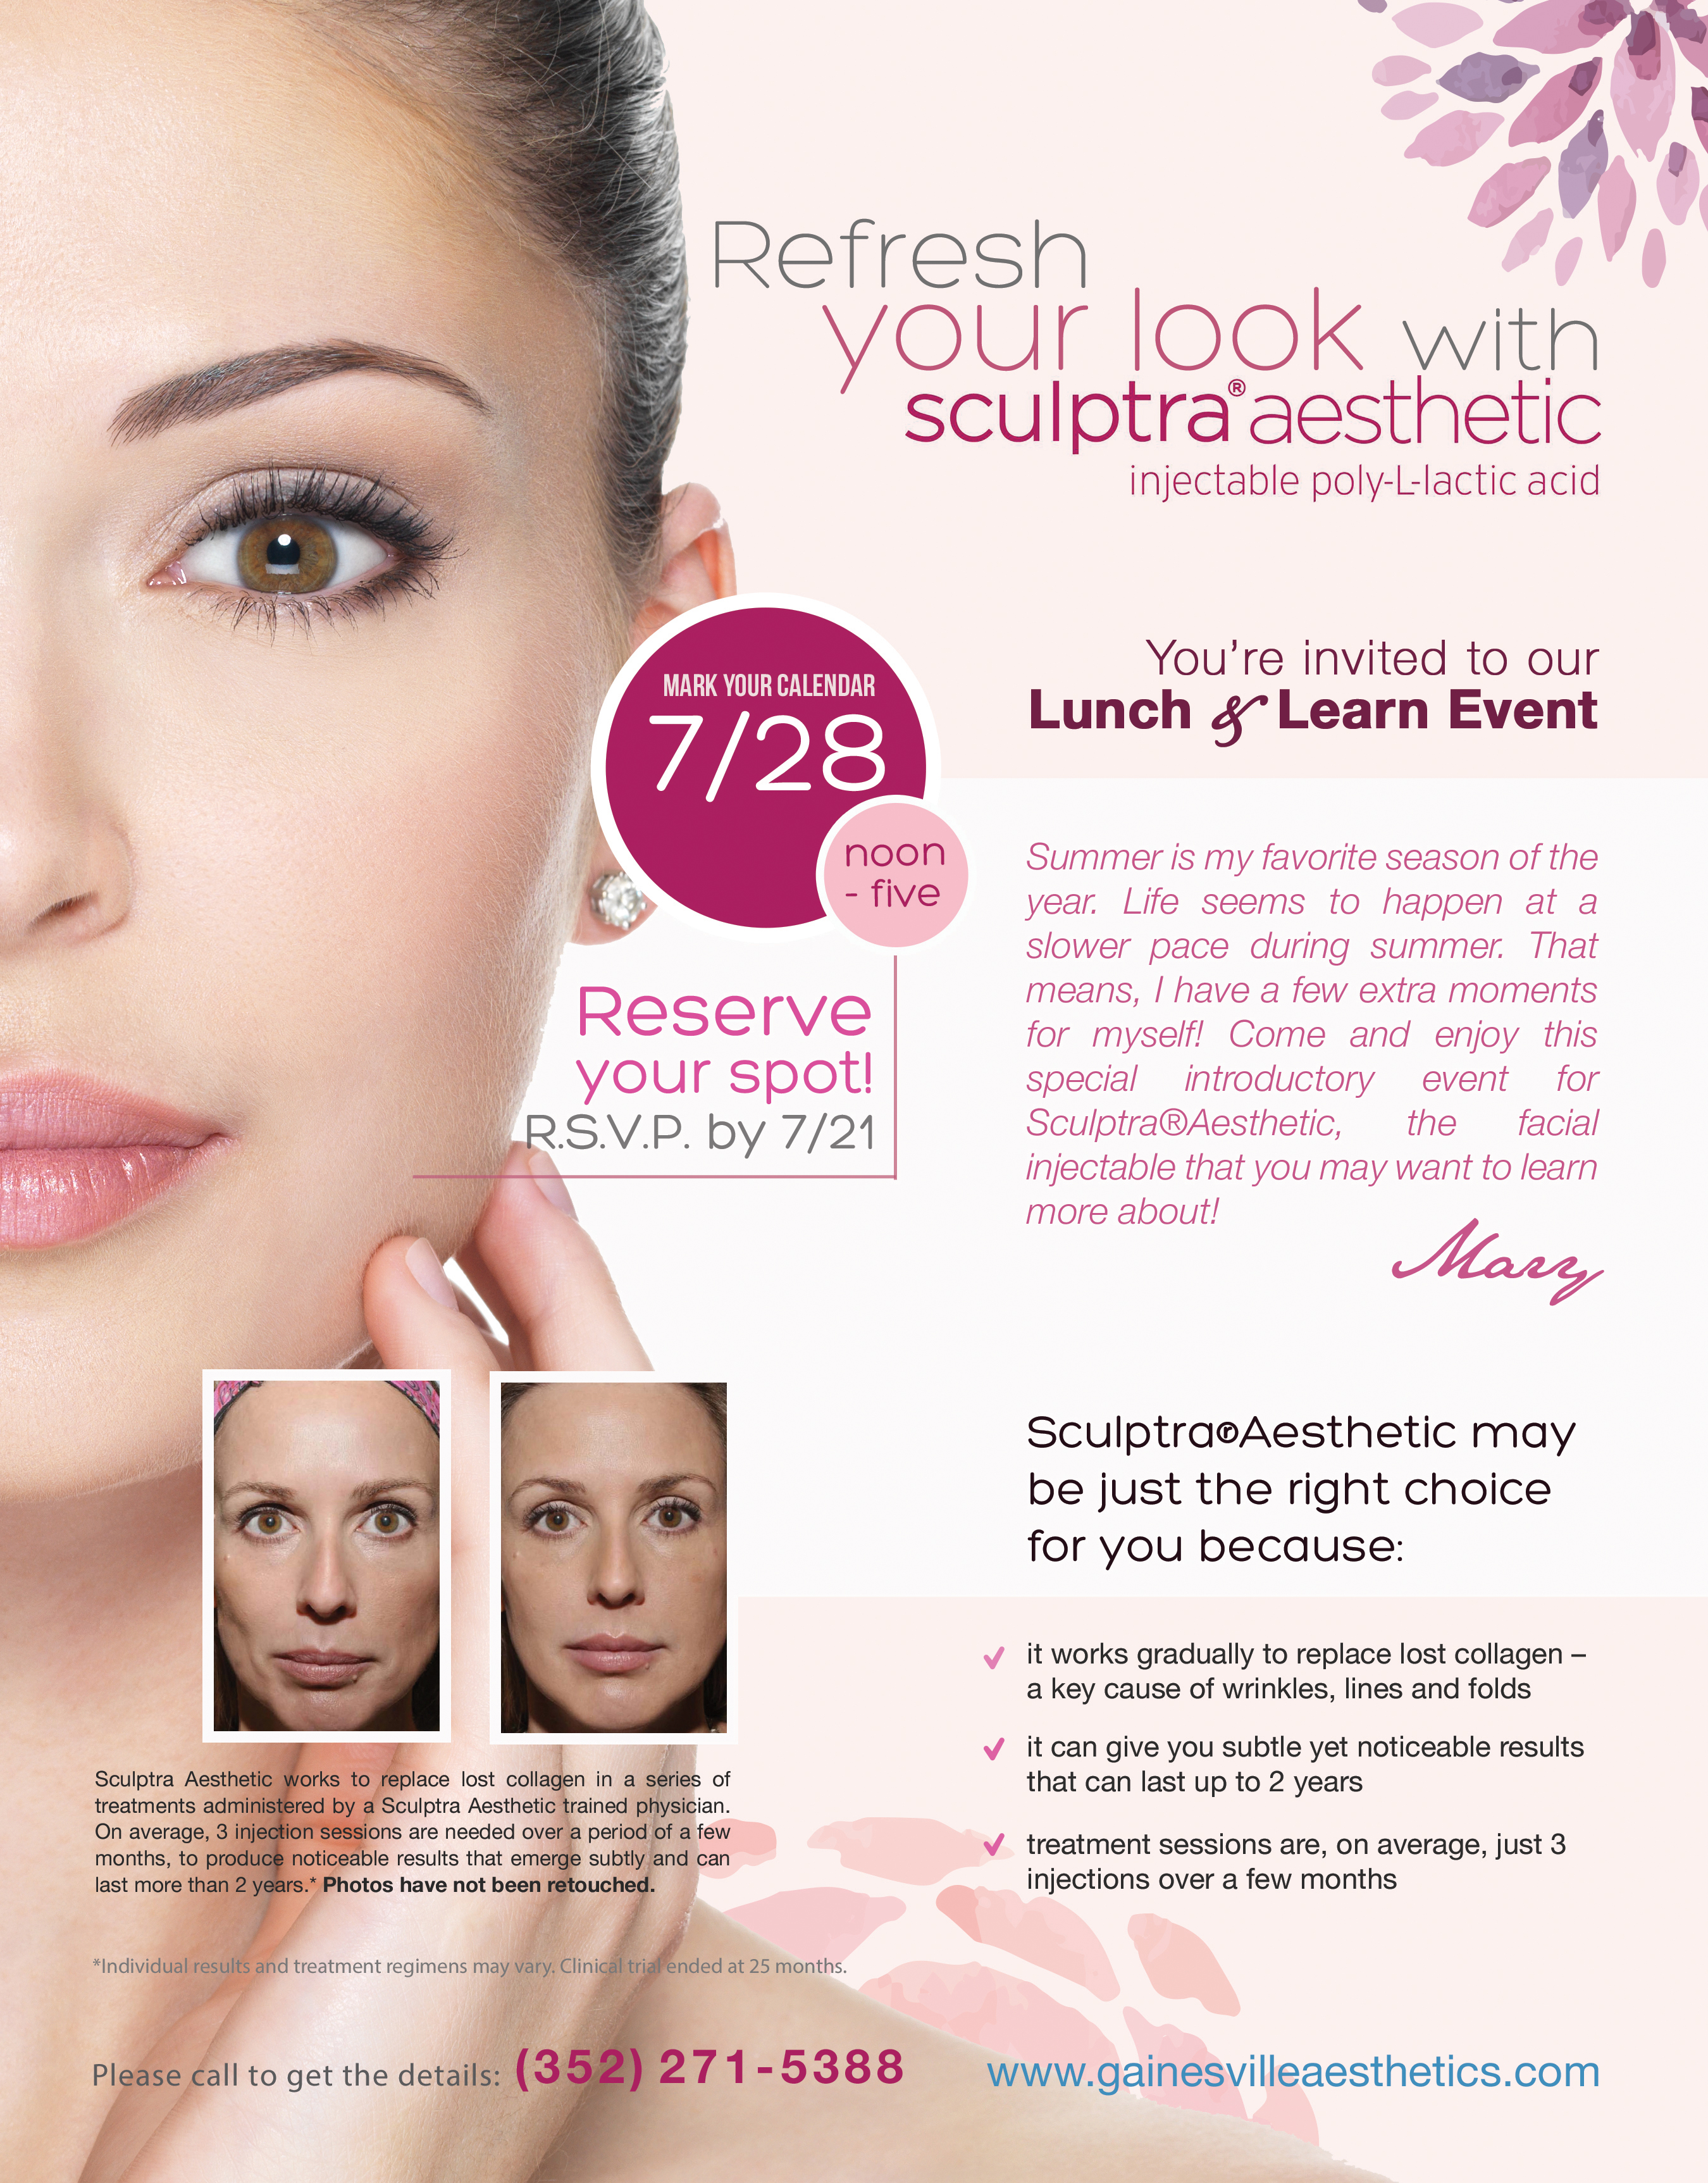 Sculptra®Aesthetic Lunch & Learn Event in Gainesville, FL